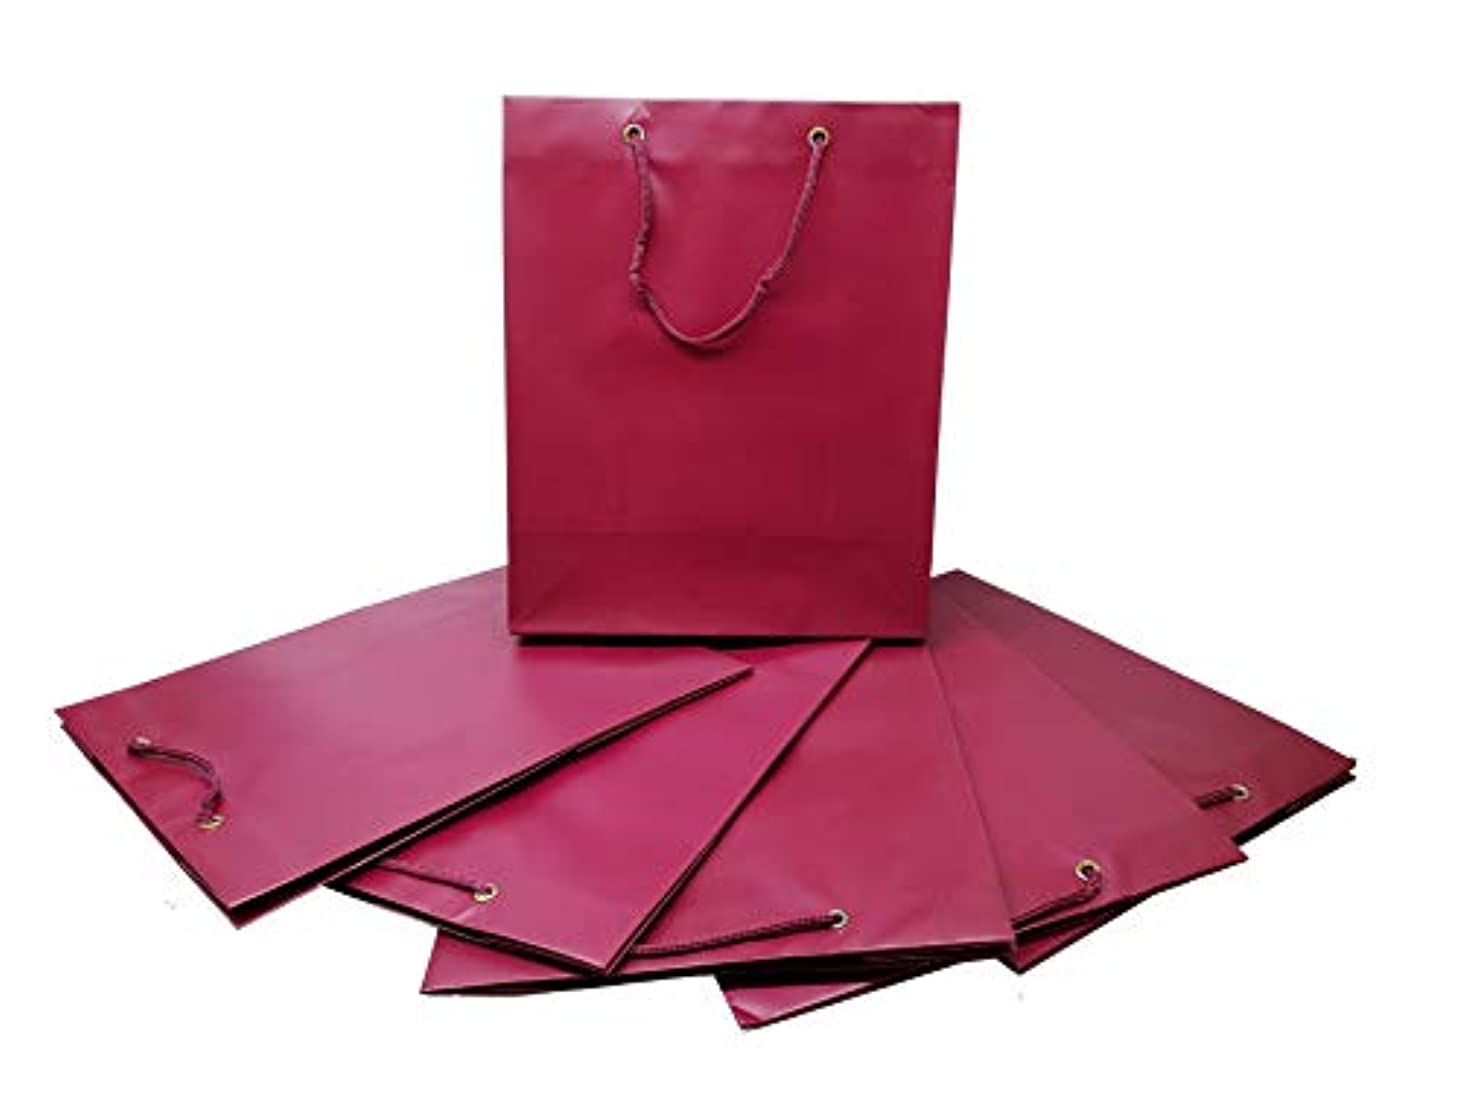 "Pack of 6 Solid Colored Gift Bags (12"" h x 10"" w x 5"" d) with String Handles (Maroon)"